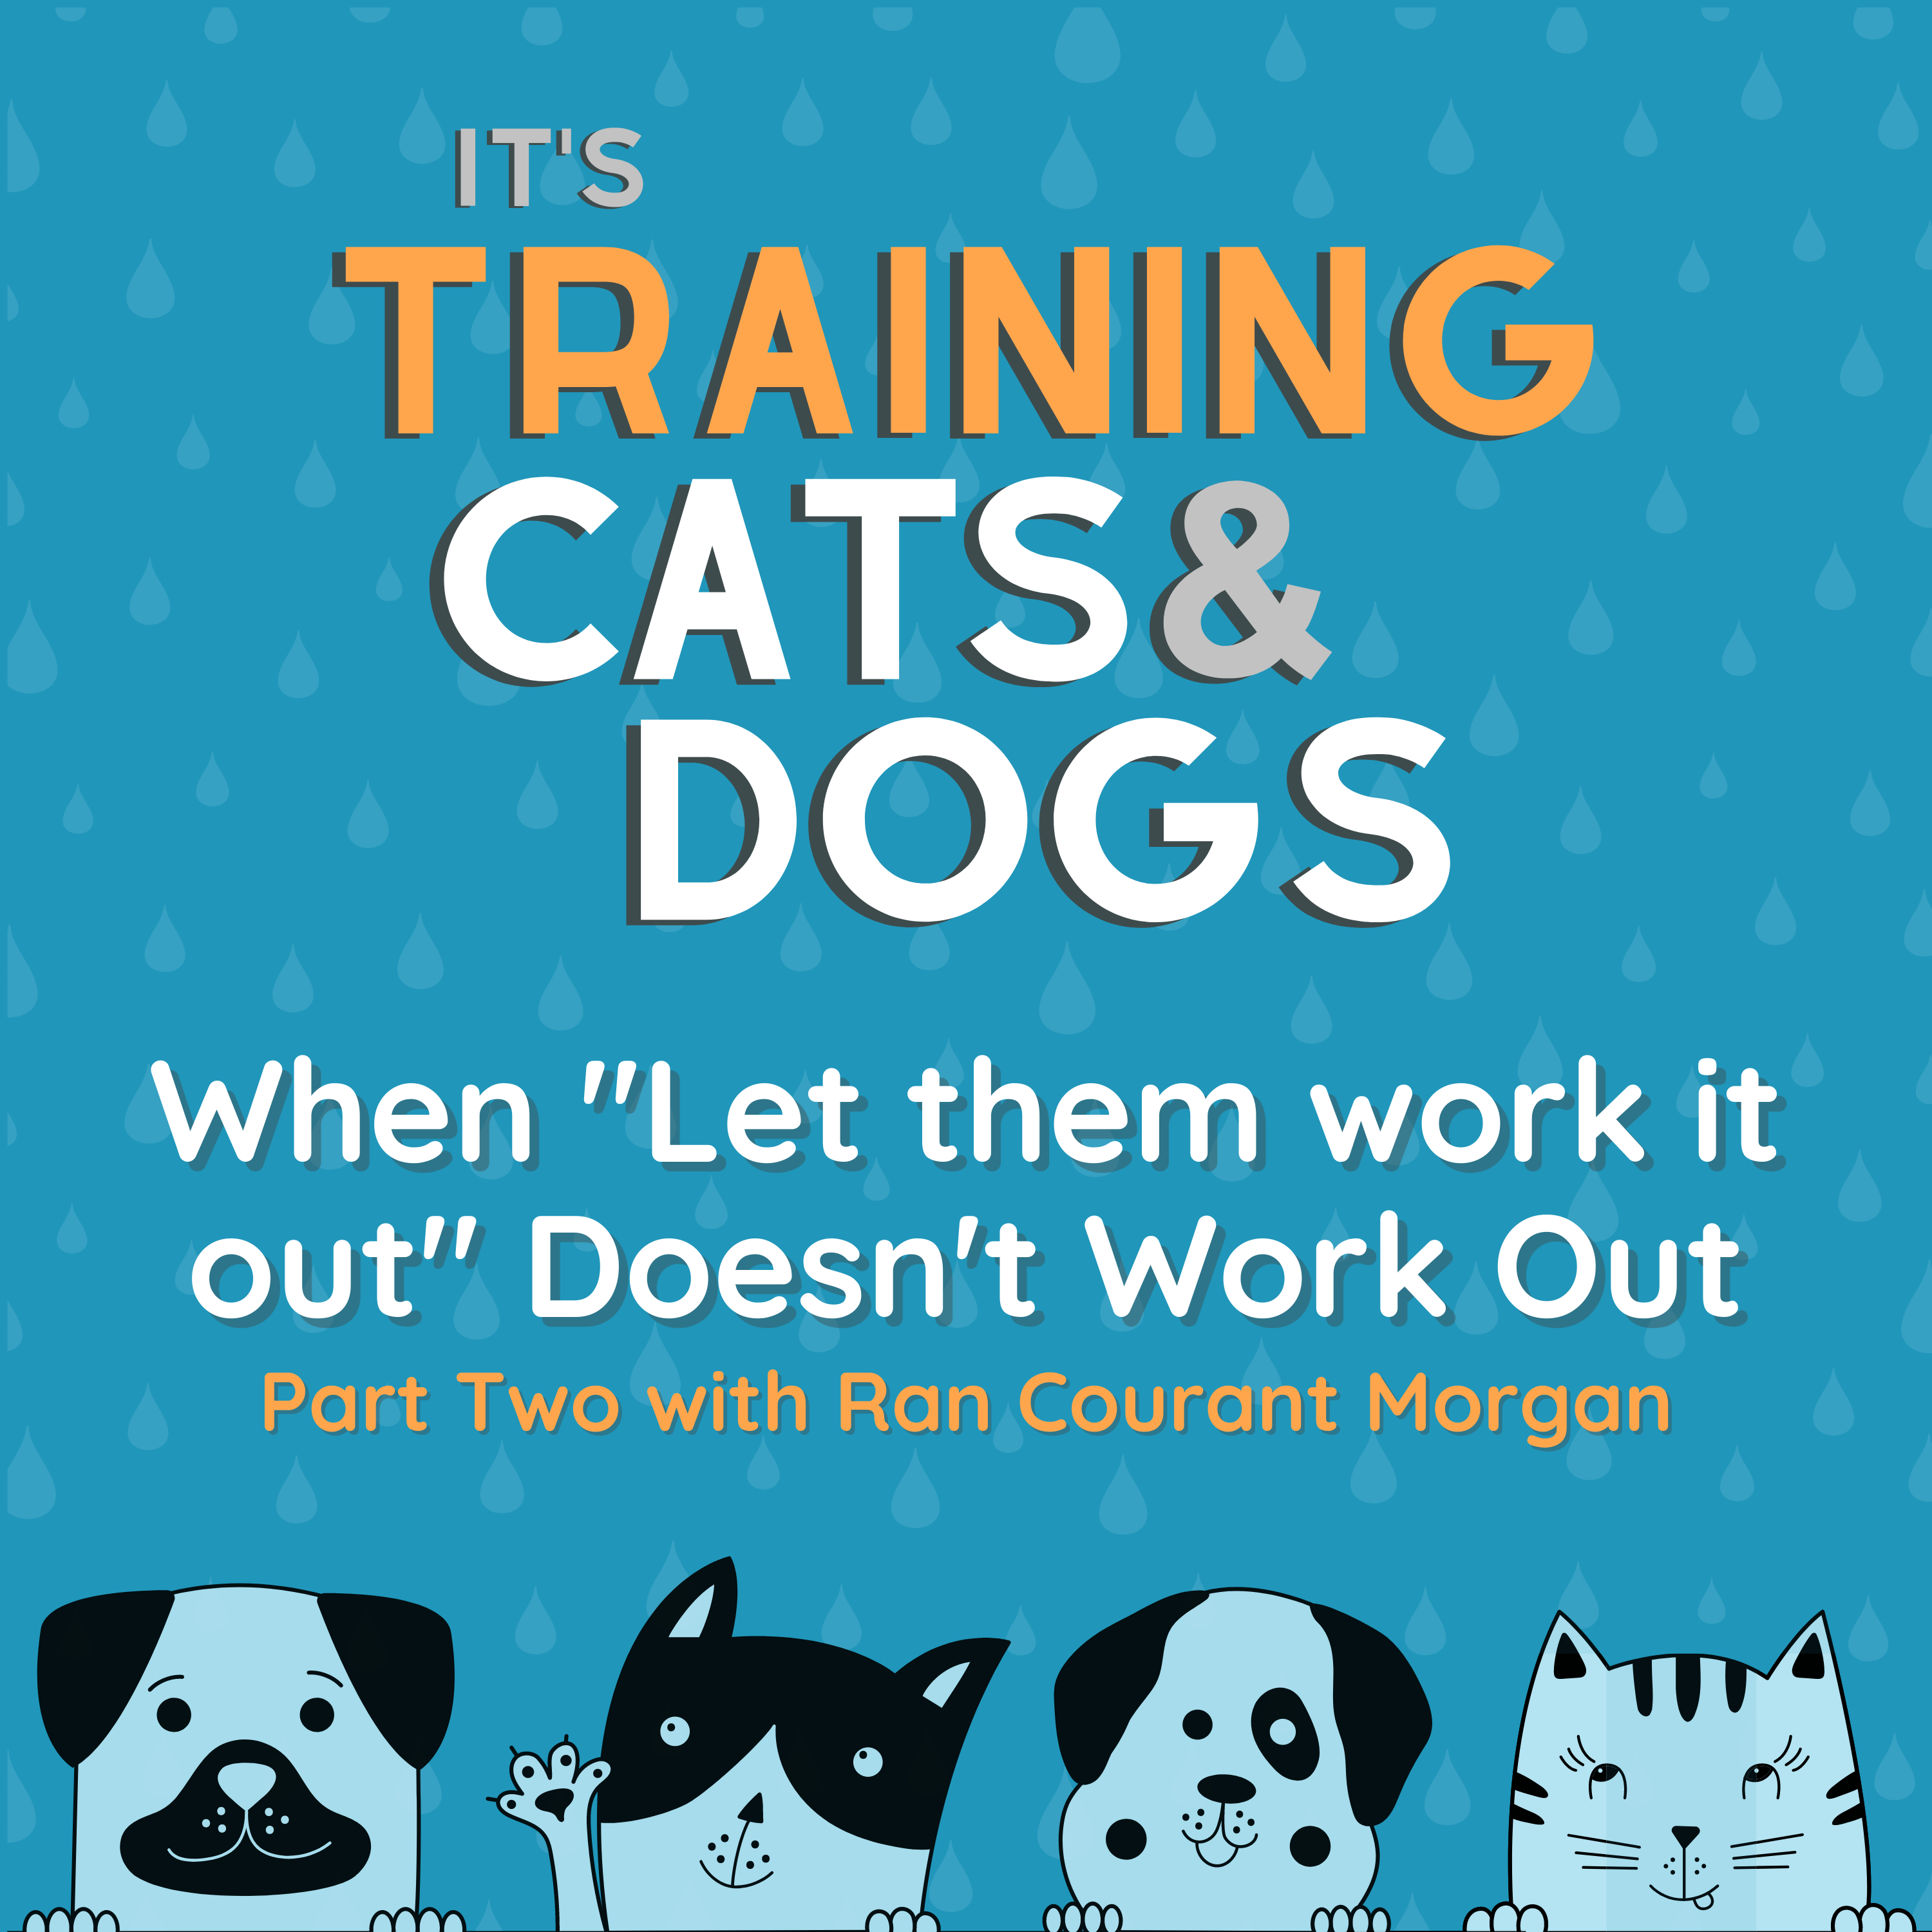 """When """"Let them work it out"""" Doesn't Work Out - Part Two - with Ran Courant Morgan"""